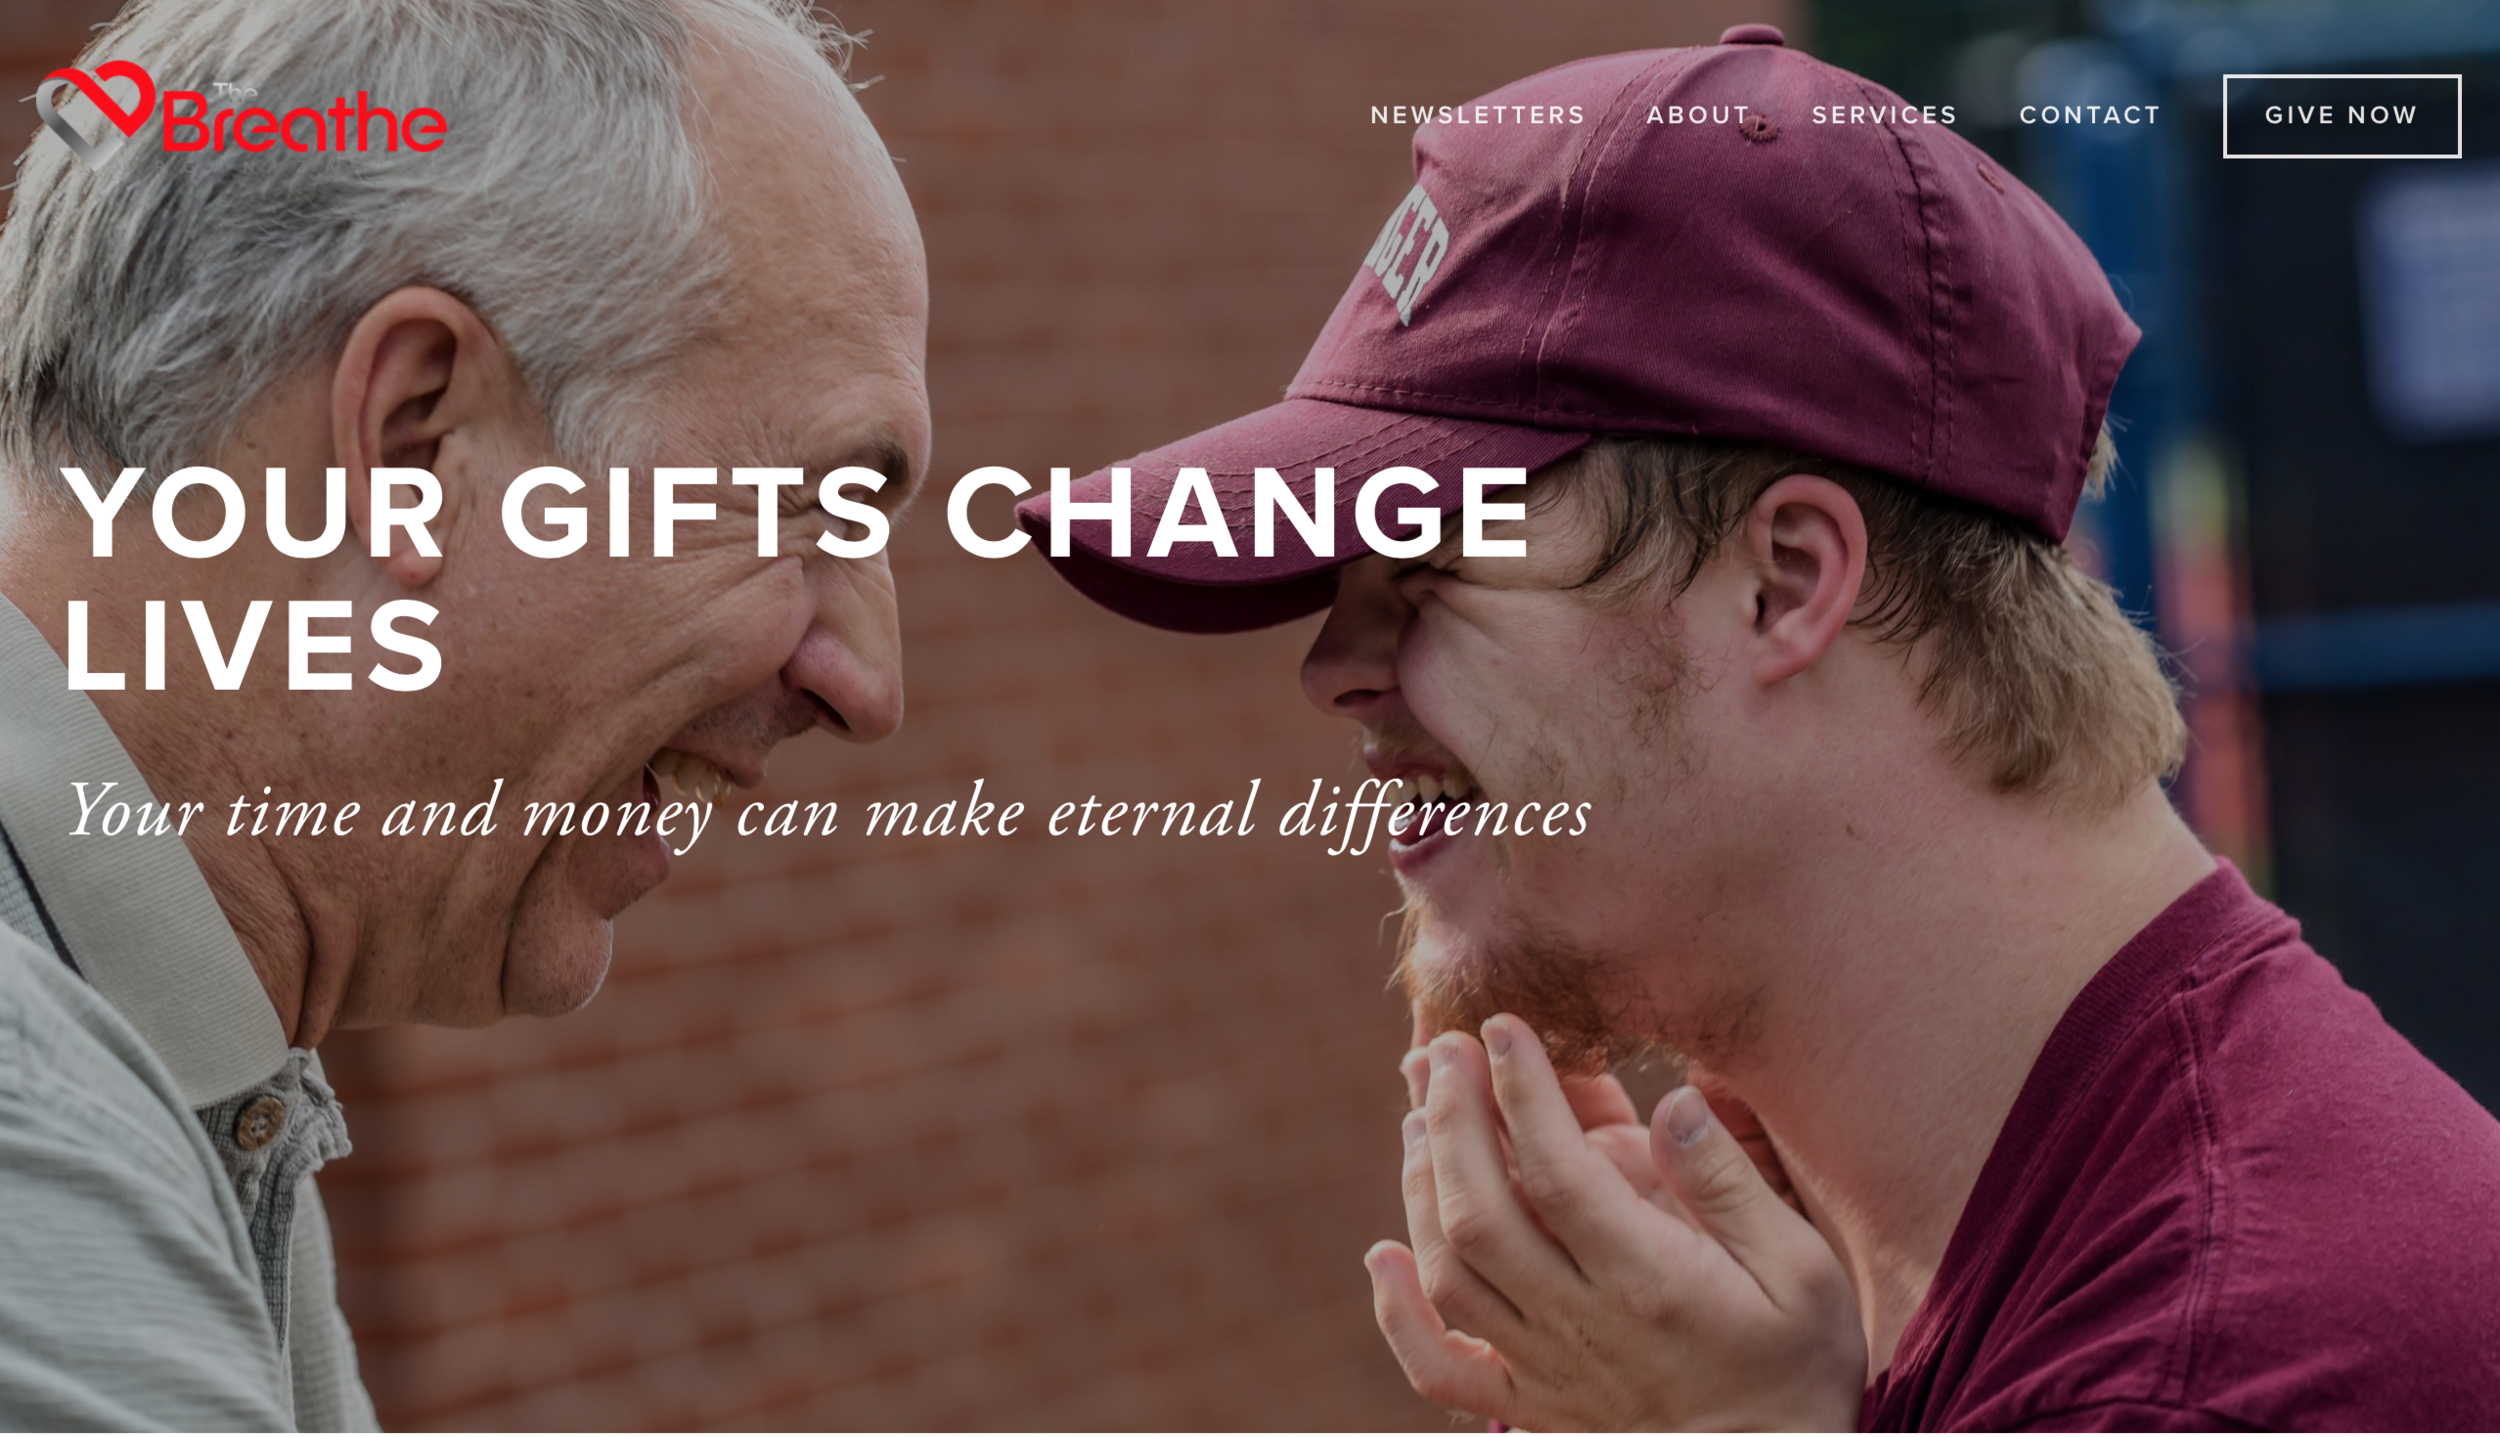 For nonprofits, the giving page is ALL IMPORTANT. Donors must be motivated to give and have a clear path to make a gift.